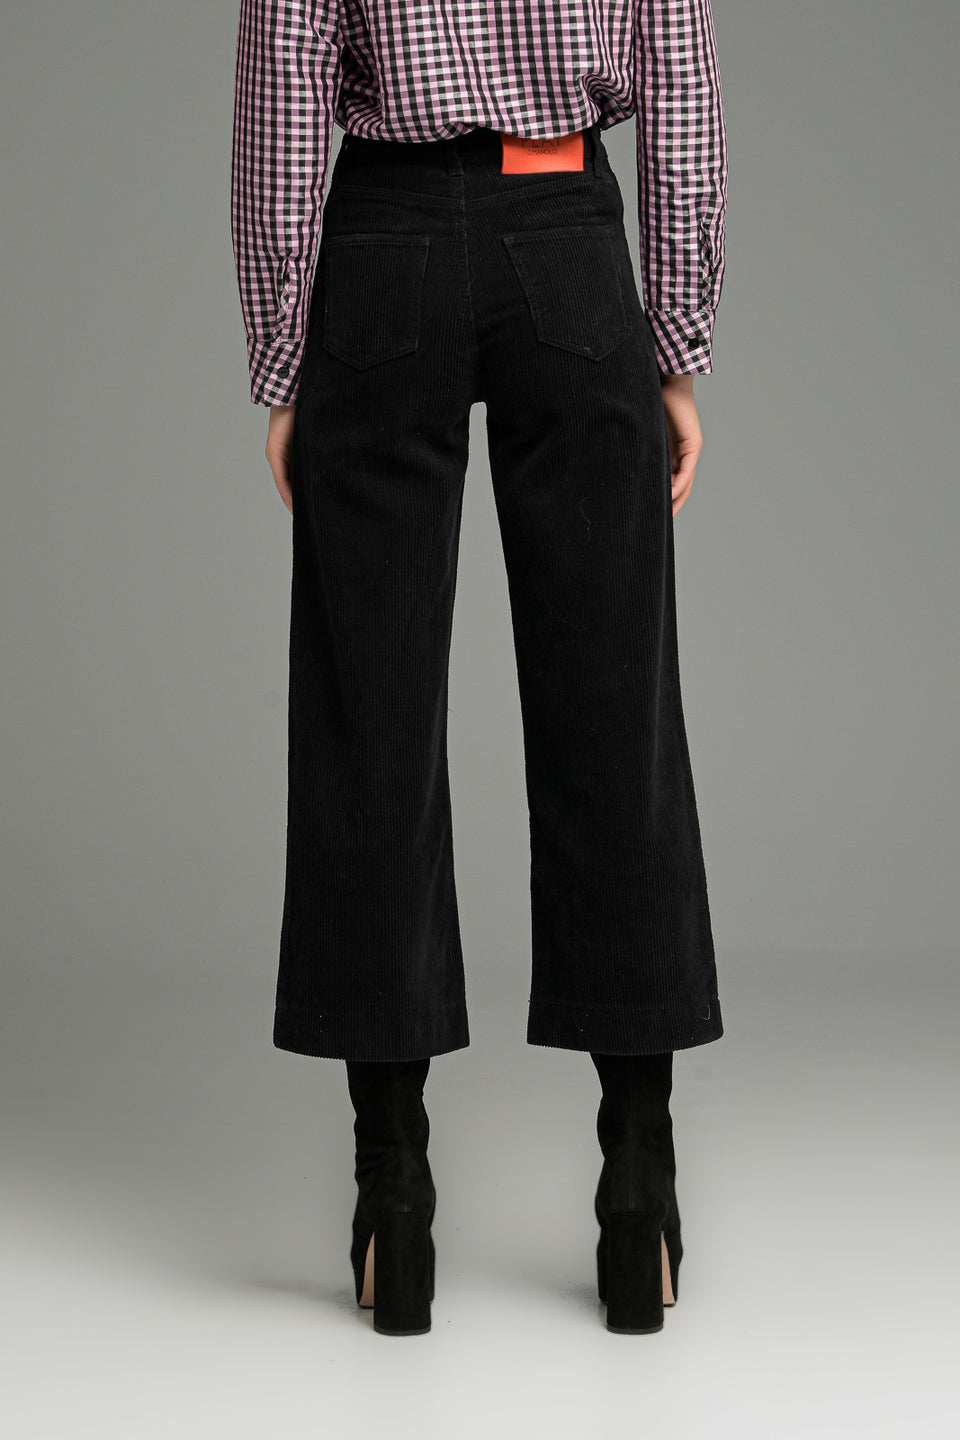 WIDE LEG CROP TROUSERS IN CORD FABRIC BLACK